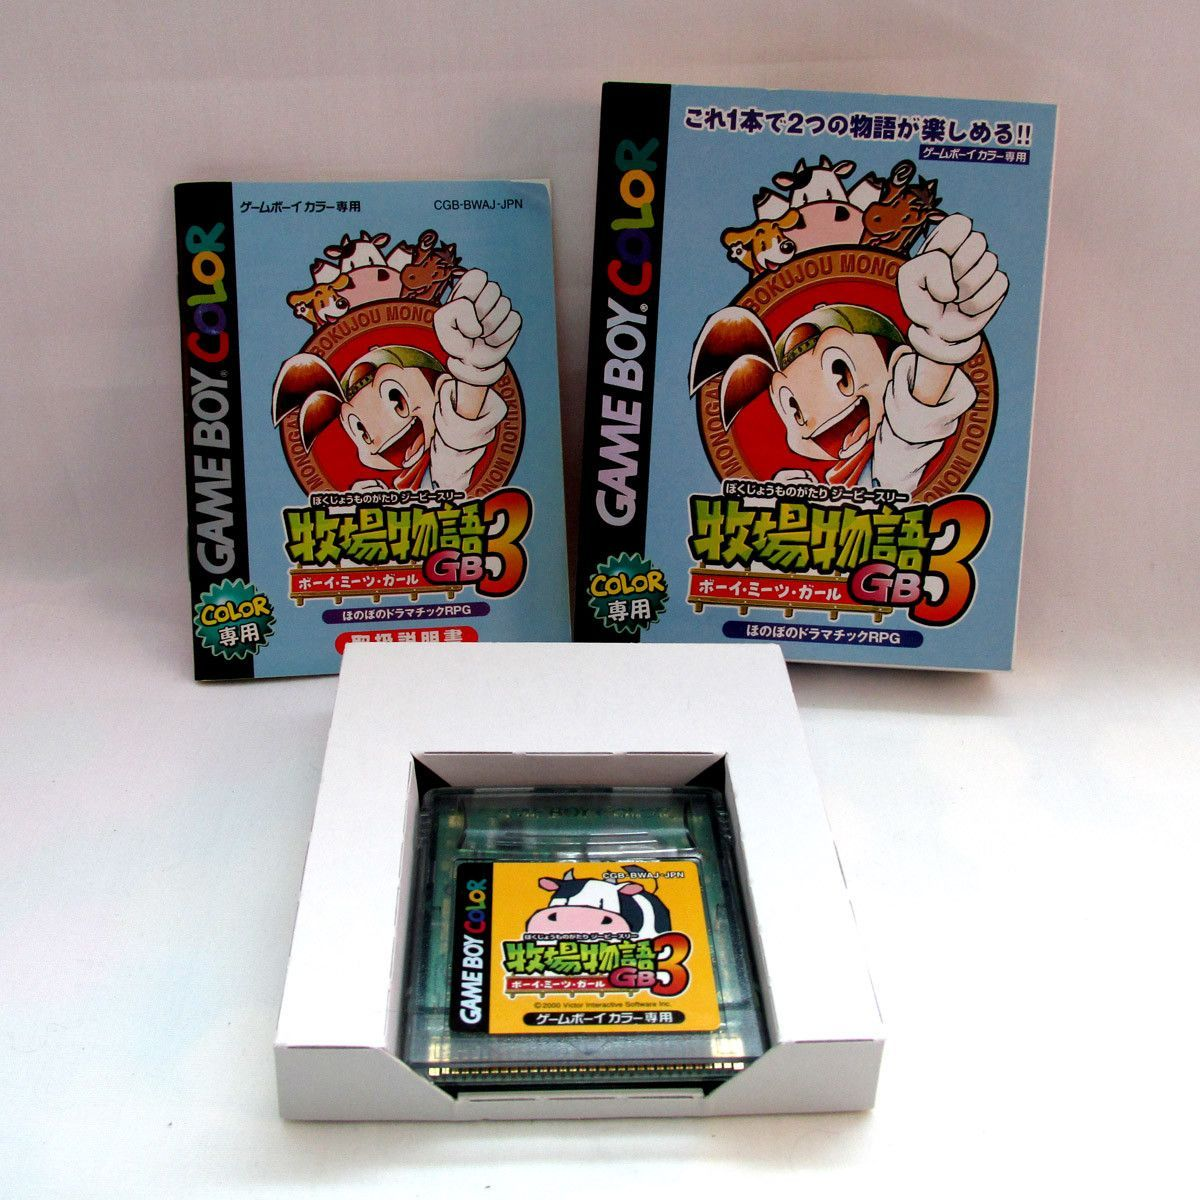 Color game japanese - Bokujou Monogatari 3 Harvest Moon 3 For Game Boy Color In Japanese